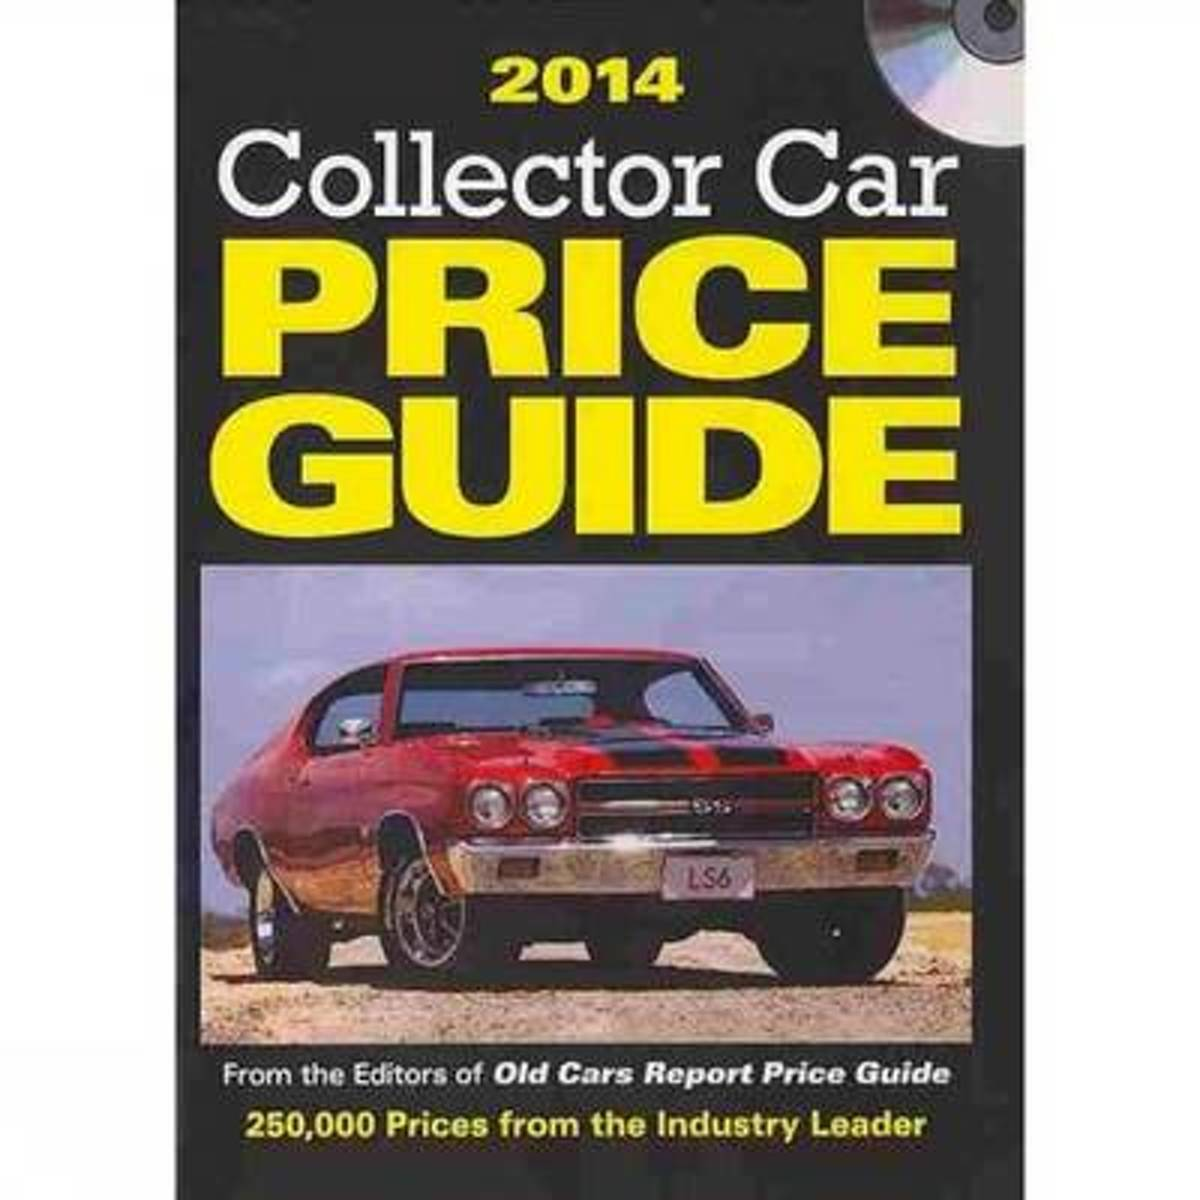 2014 Collector Car Price Guide